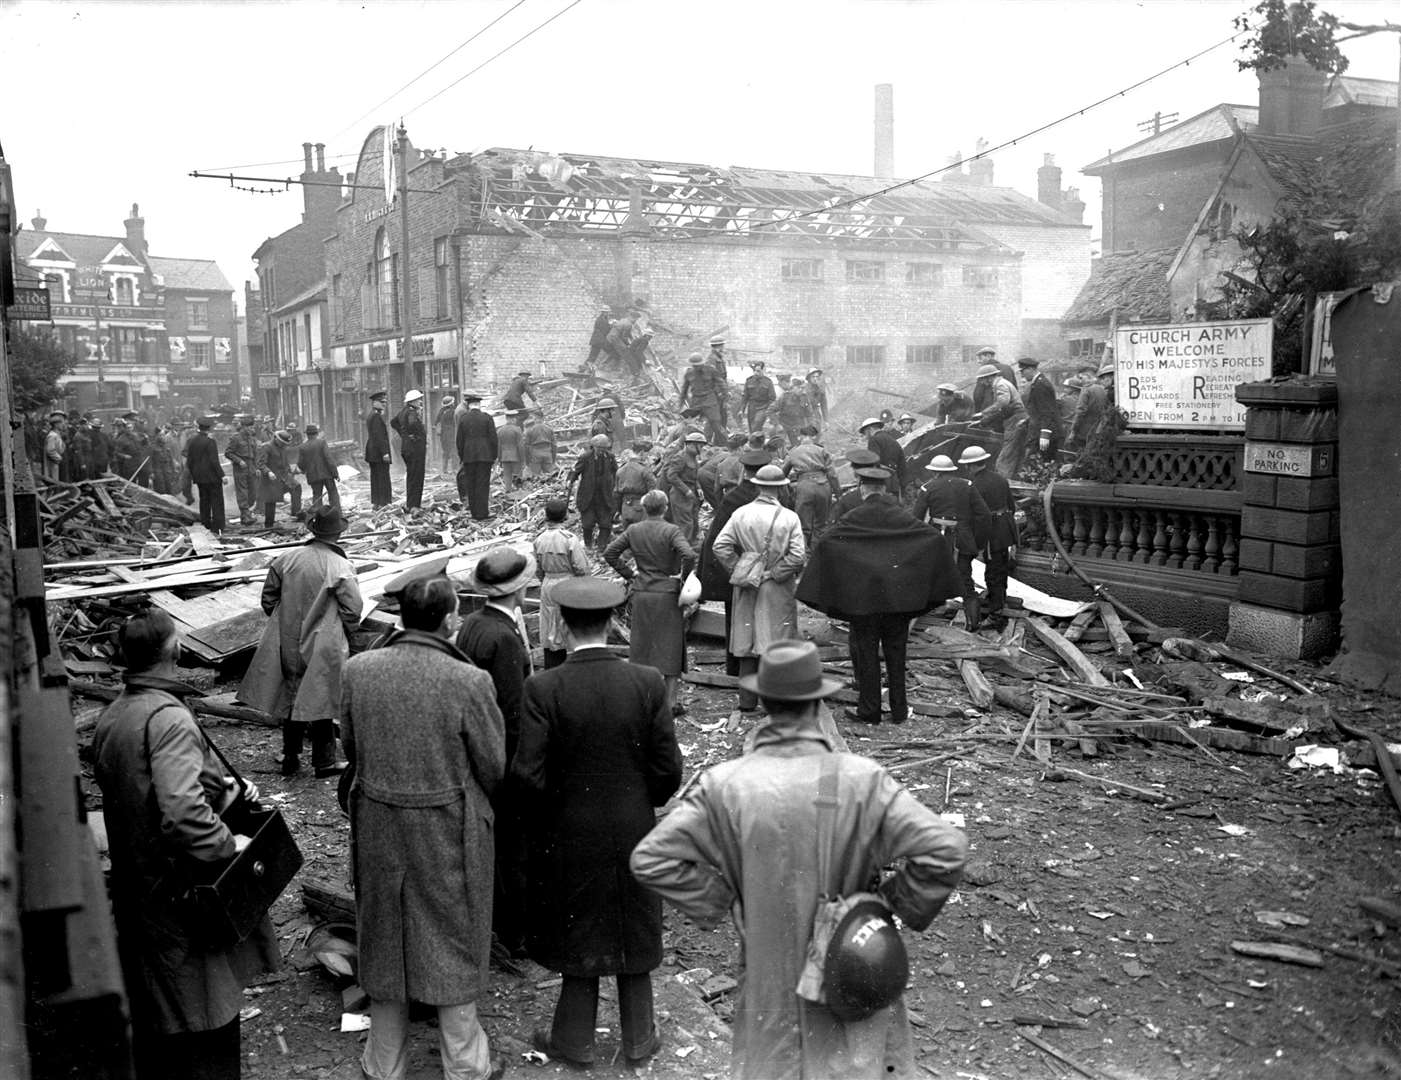 Residents look at the smouldering rubble of the Foresters Arms in Knightrider Street which was destroyed by a German bomb in 1940 Archive picture